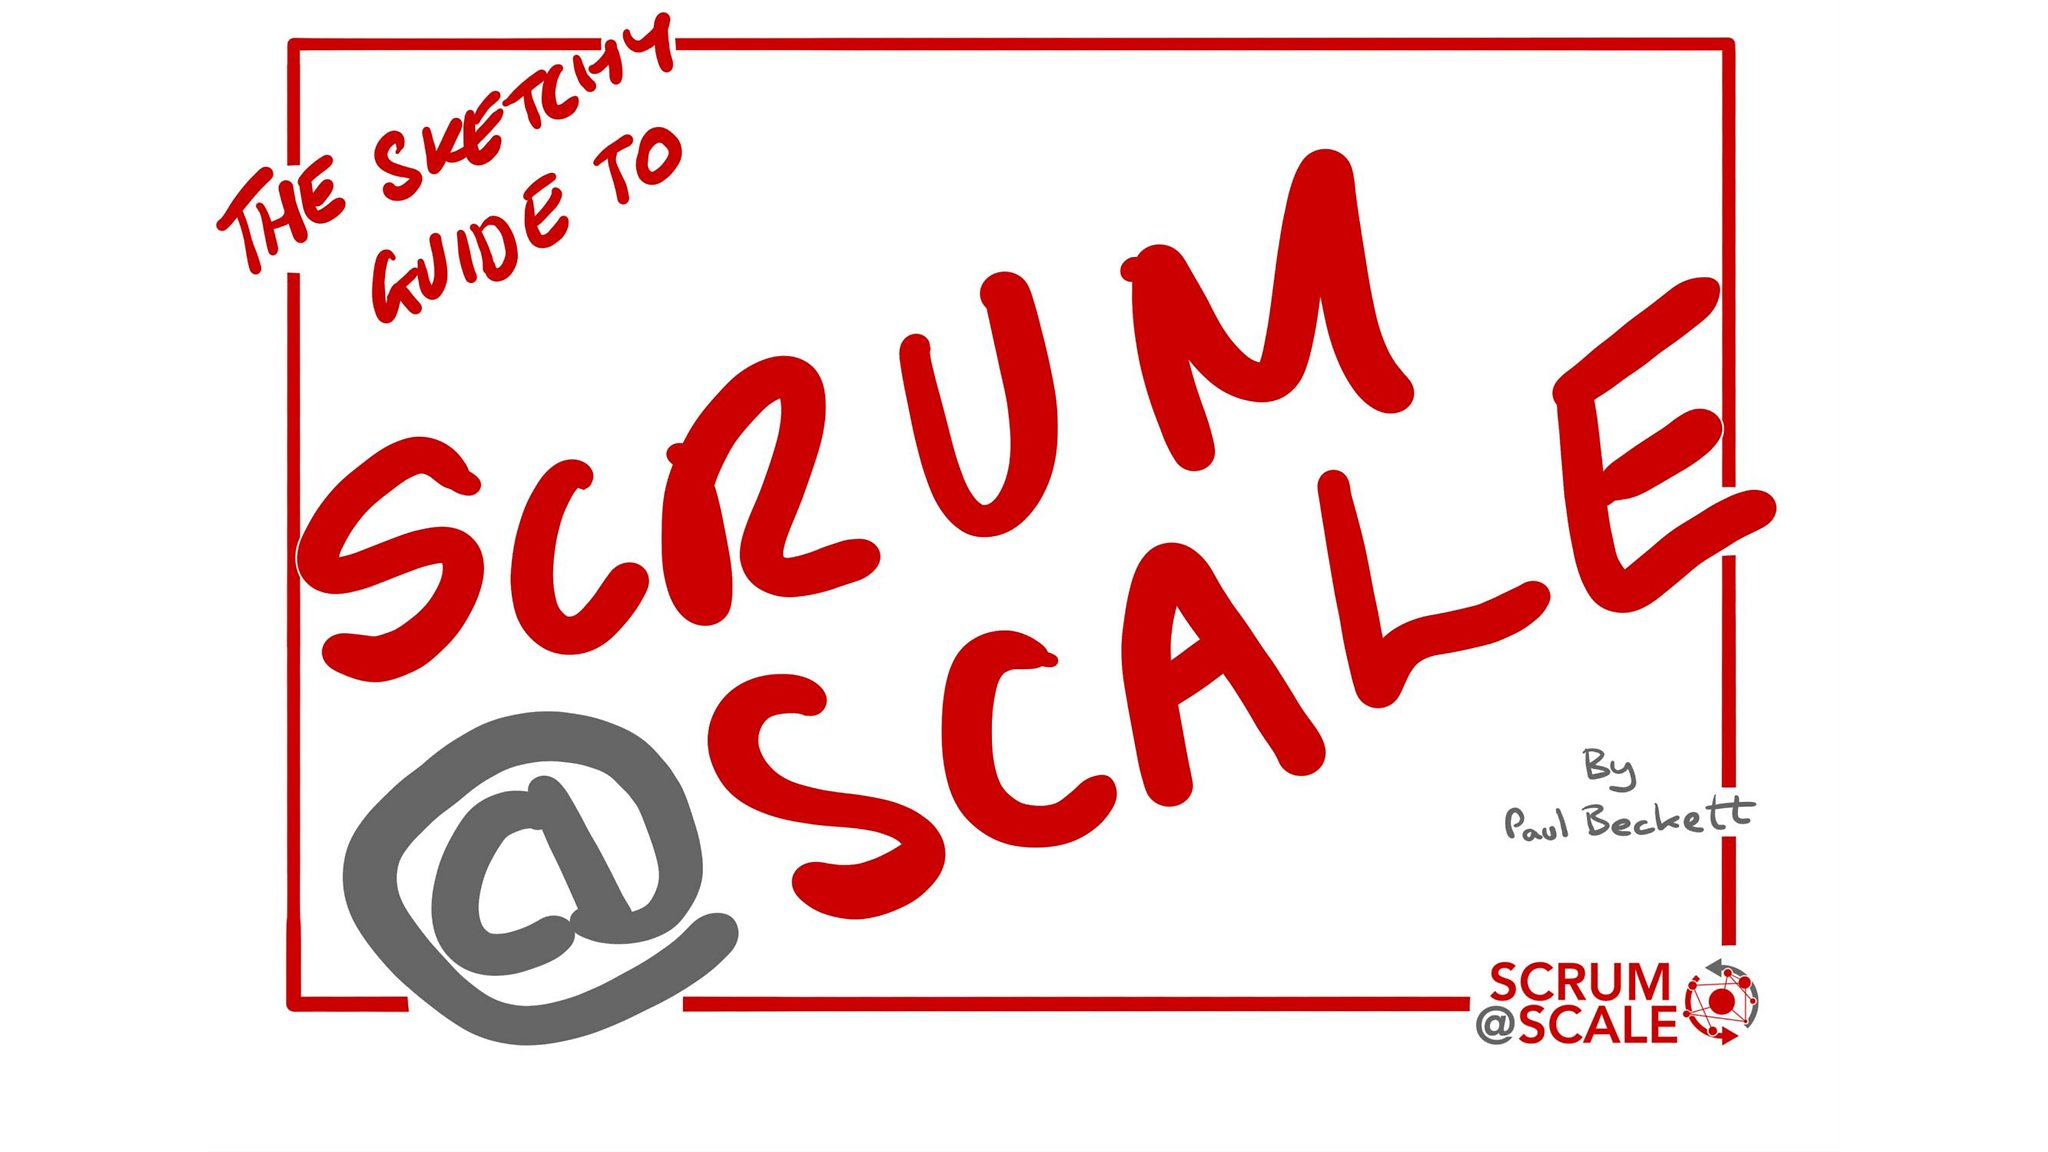 The Sketchy Guide to Scrum@Scale | Scrum@Scale Guide (Visual Complementary Version)